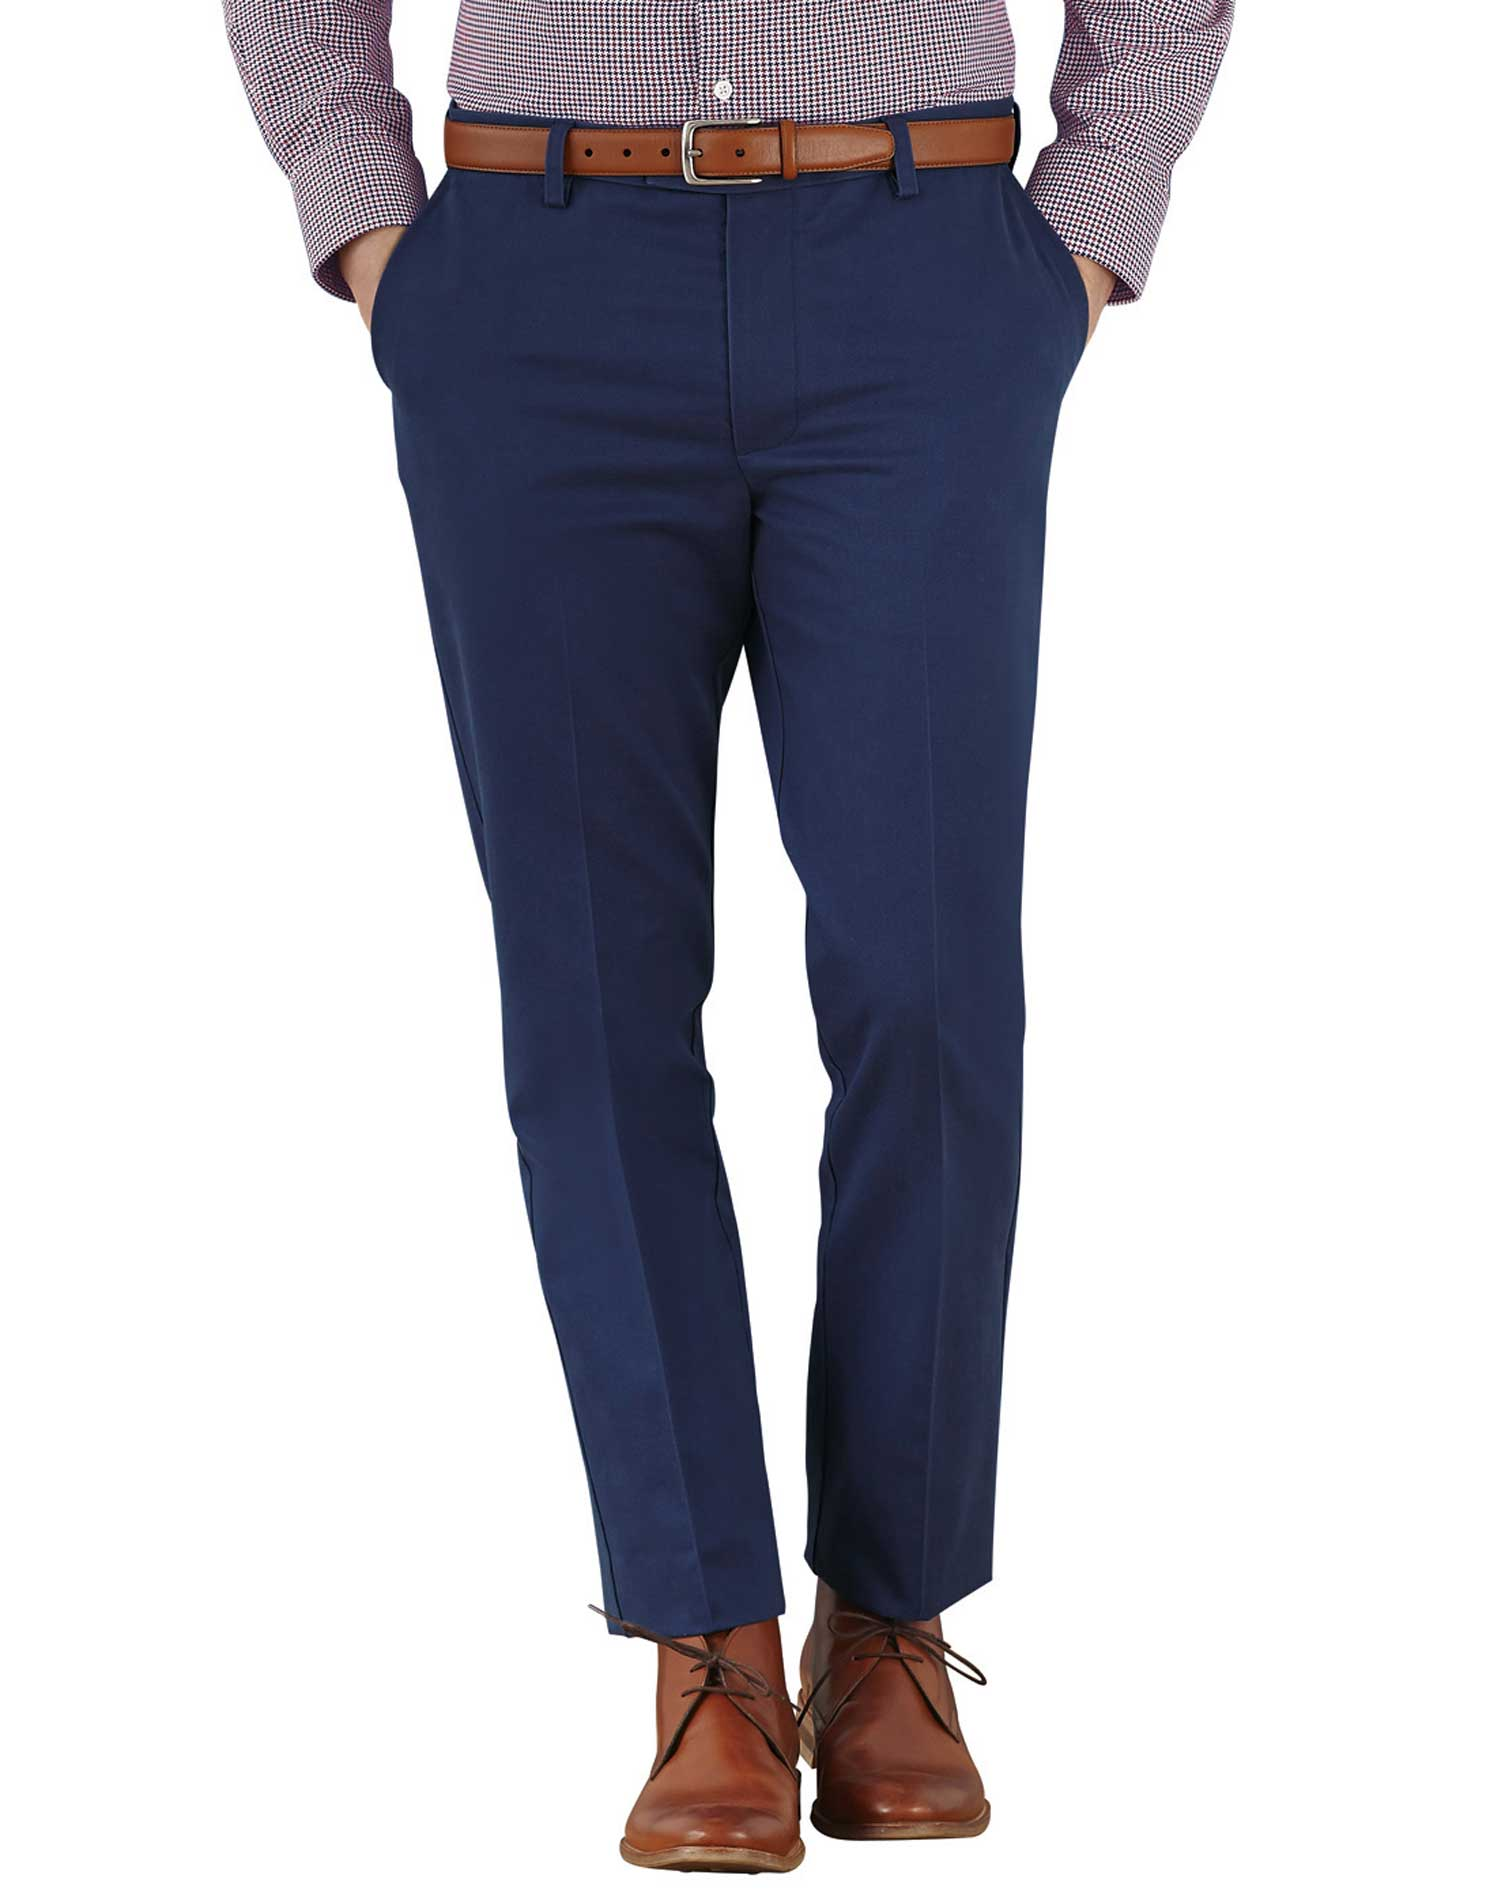 Marine Blue Extra Slim Fit Flat Front Non-Iron Cotton Chino Trousers Size W30 L30 by Charles Tyrwhit